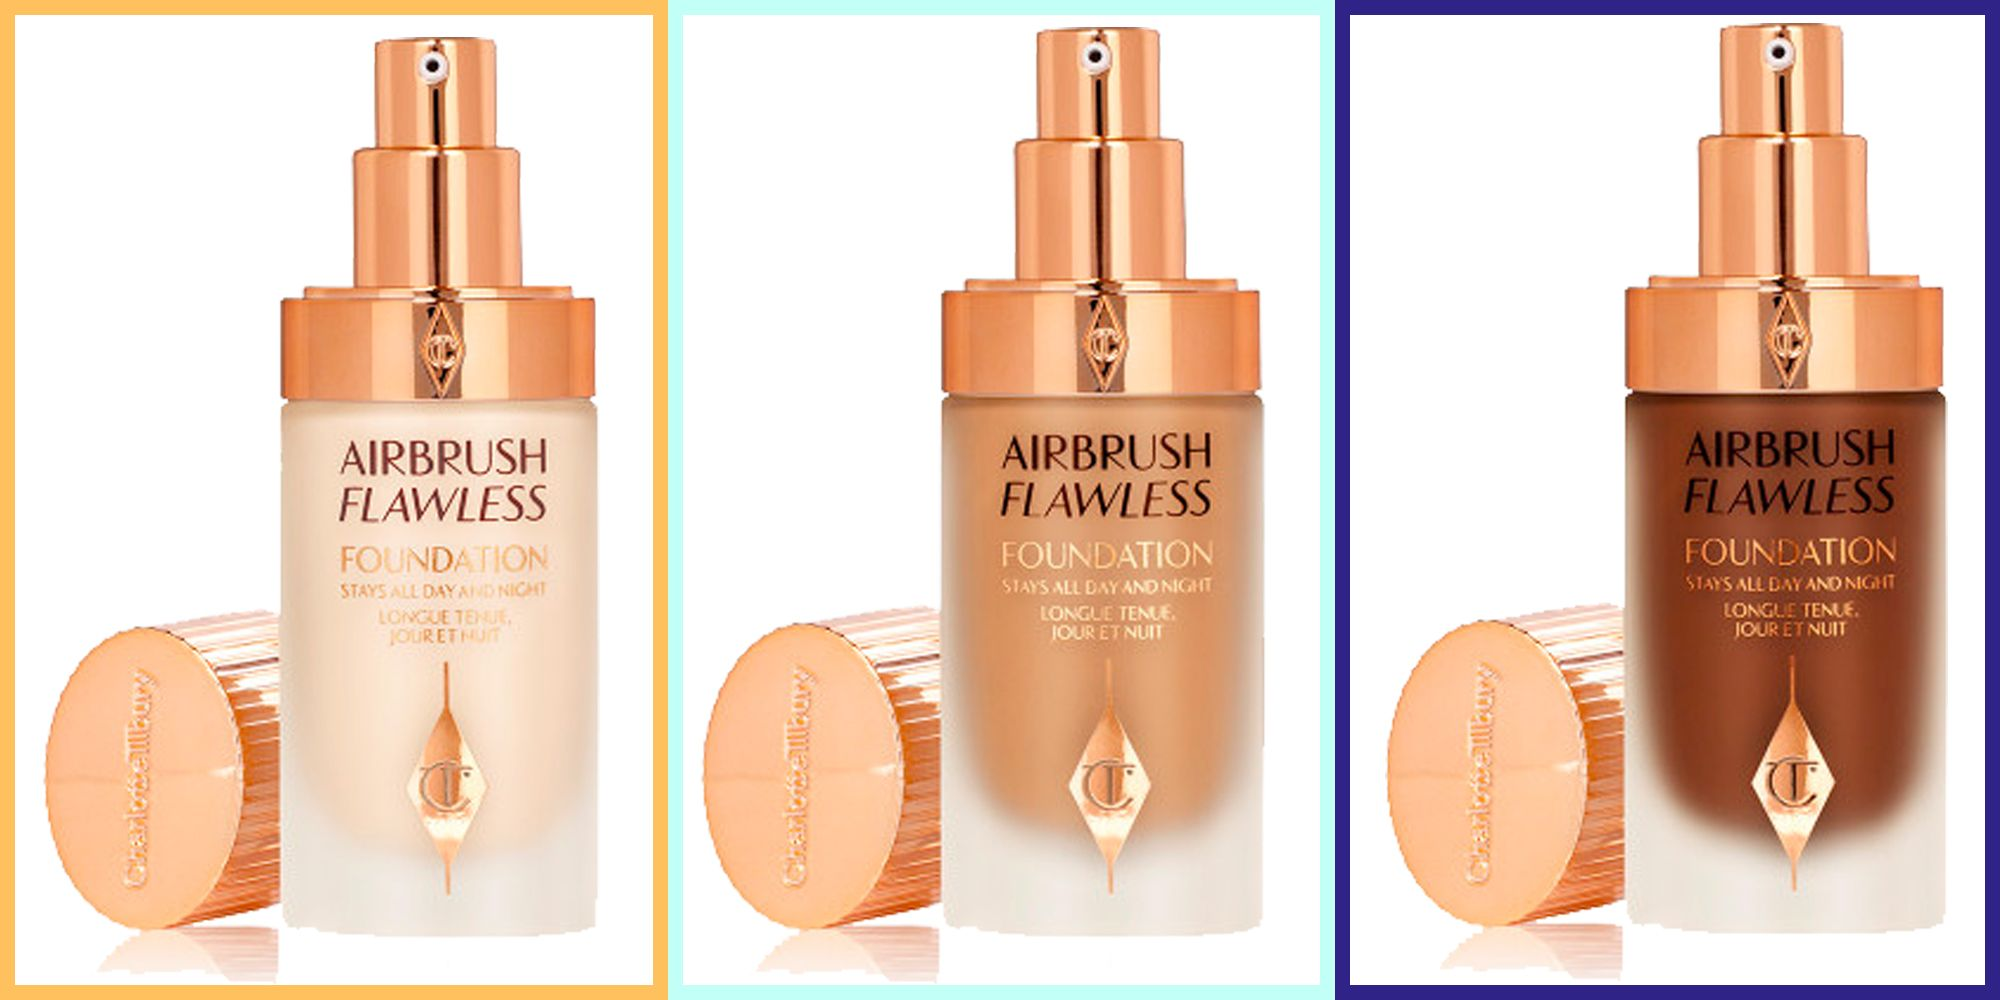 Charlotte Tilbury's Airbrush Flawless Foundation launches following 17,000-strong waiting list